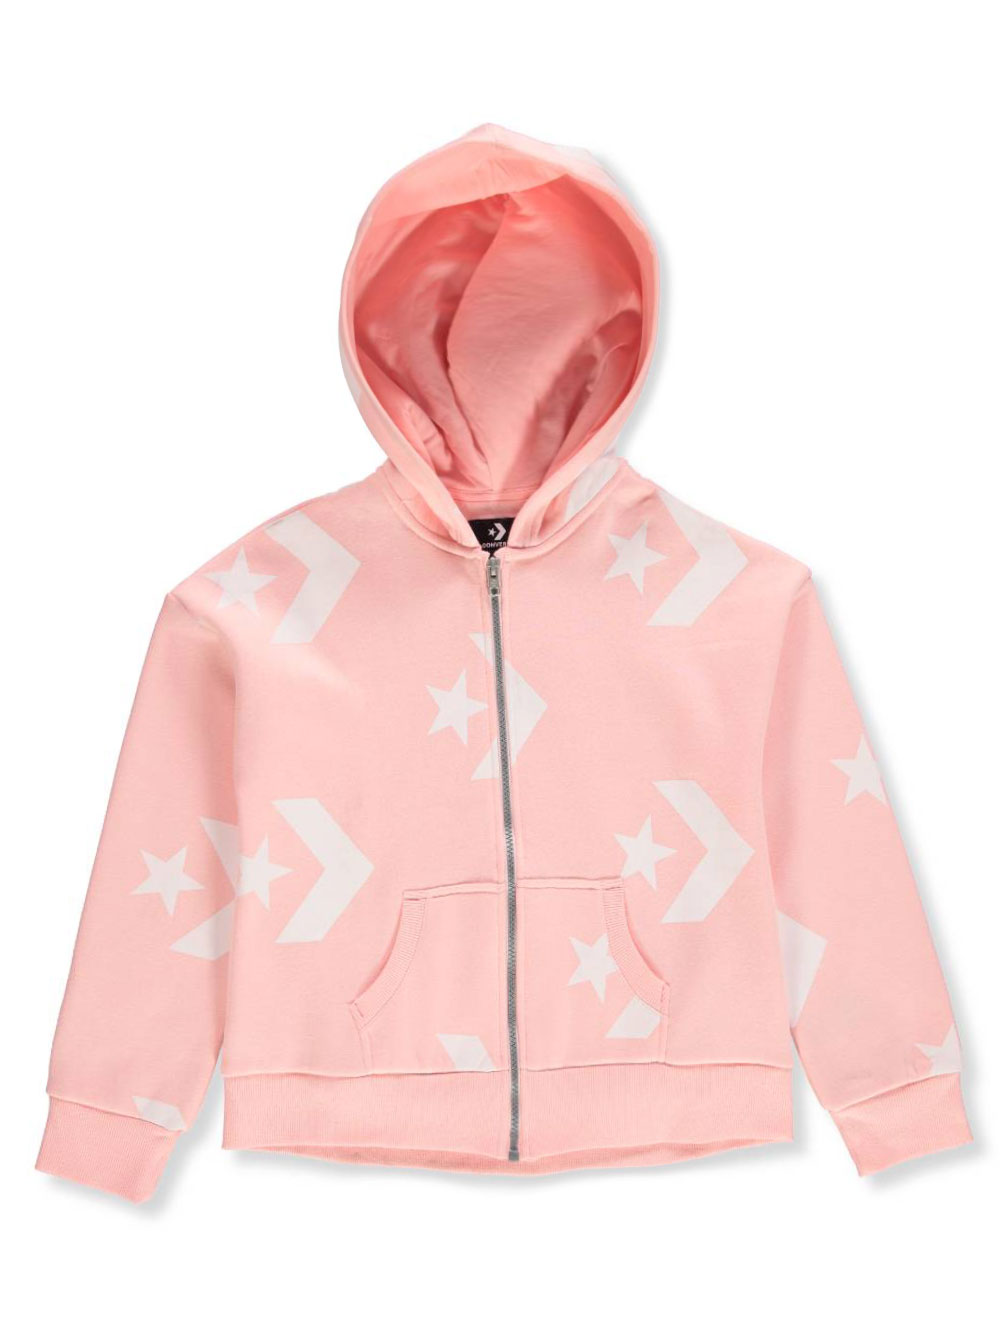 Size 16 Hoodies for Girls from Cookie's Kids